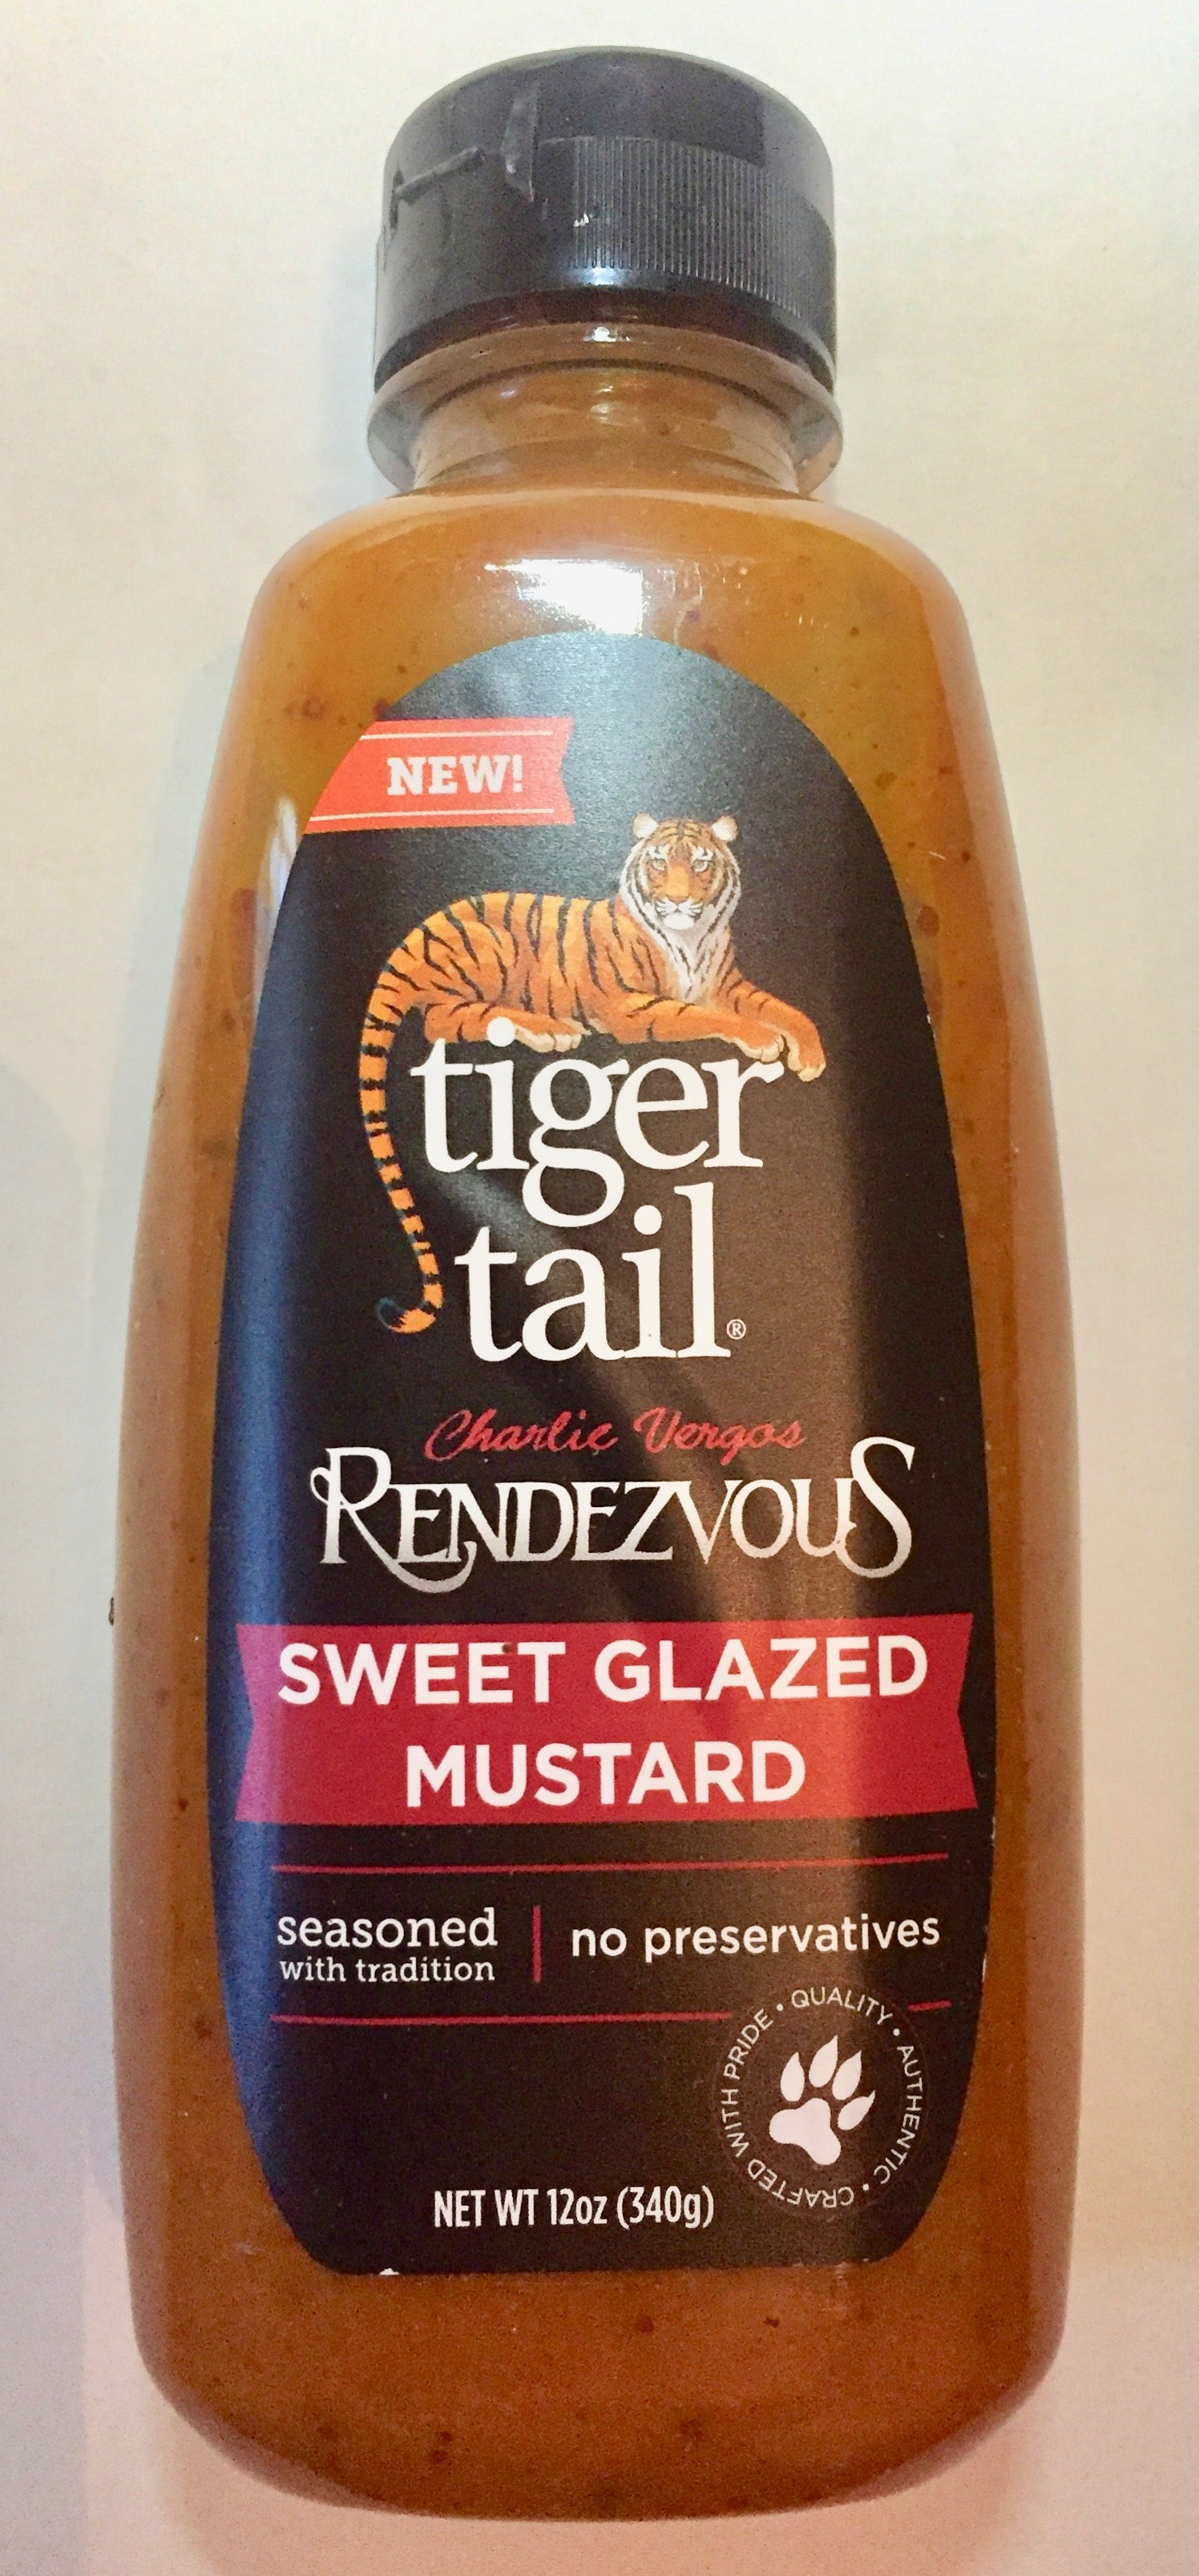 Rendezvous Tigertail Sweet Glazed Mustard